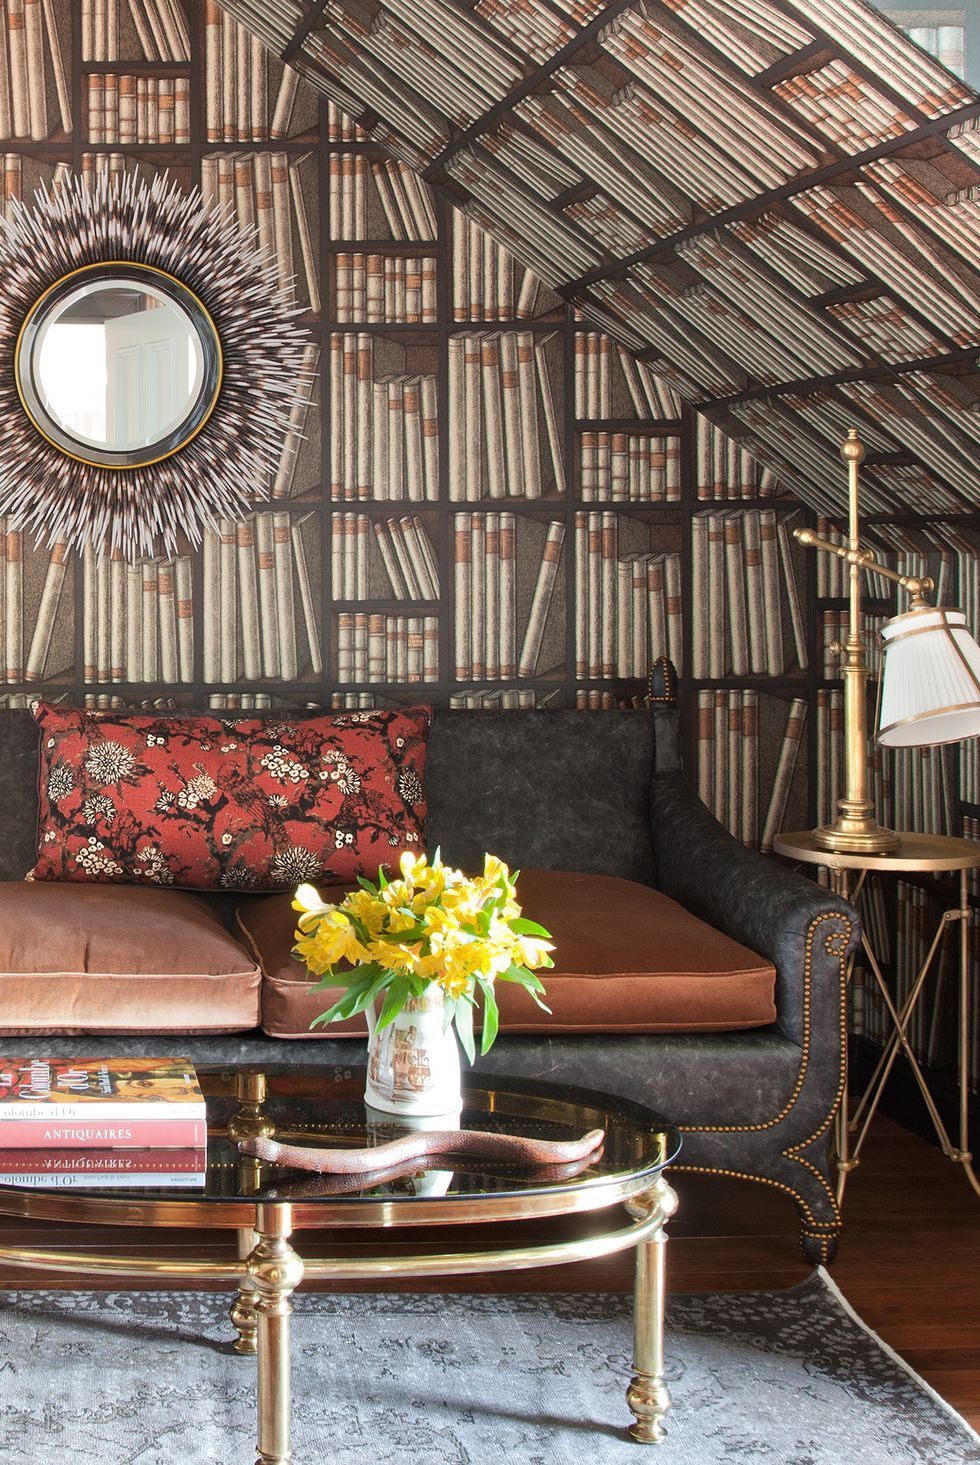 48 Easy Fall Decorating Ideas Best Autumn Decor For Every Room